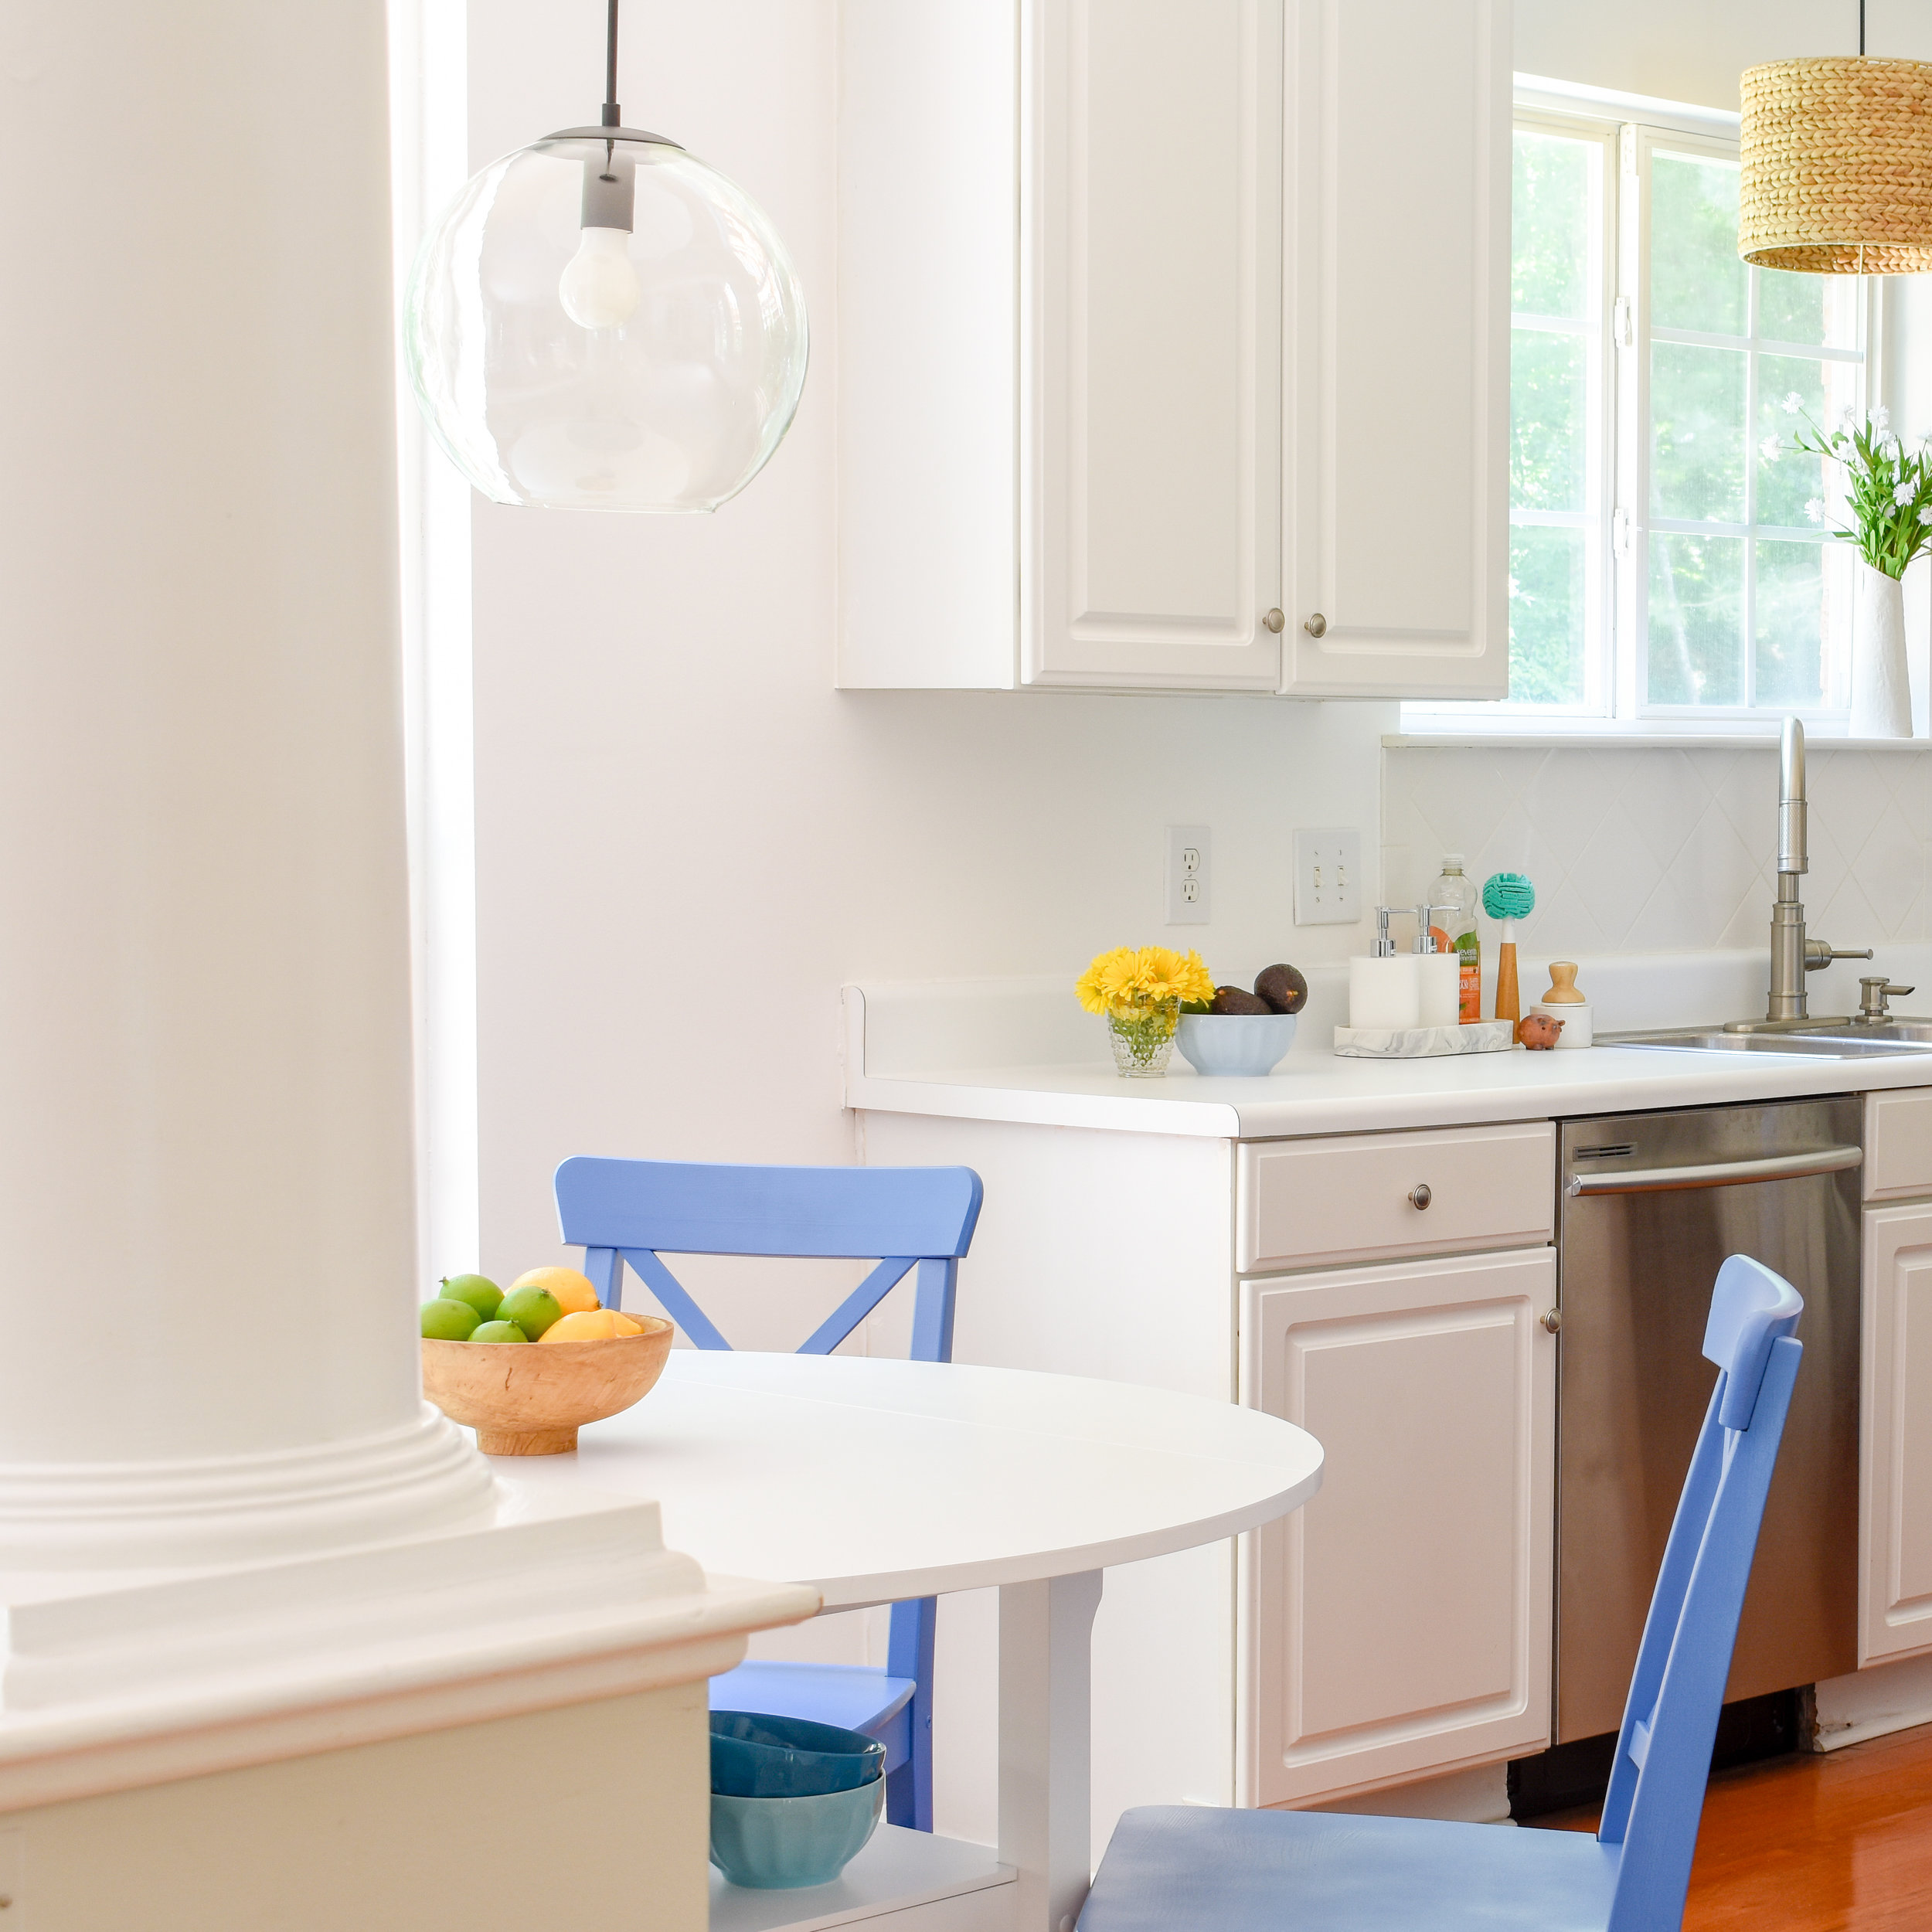 Colorful Kitchen Updates for Summer